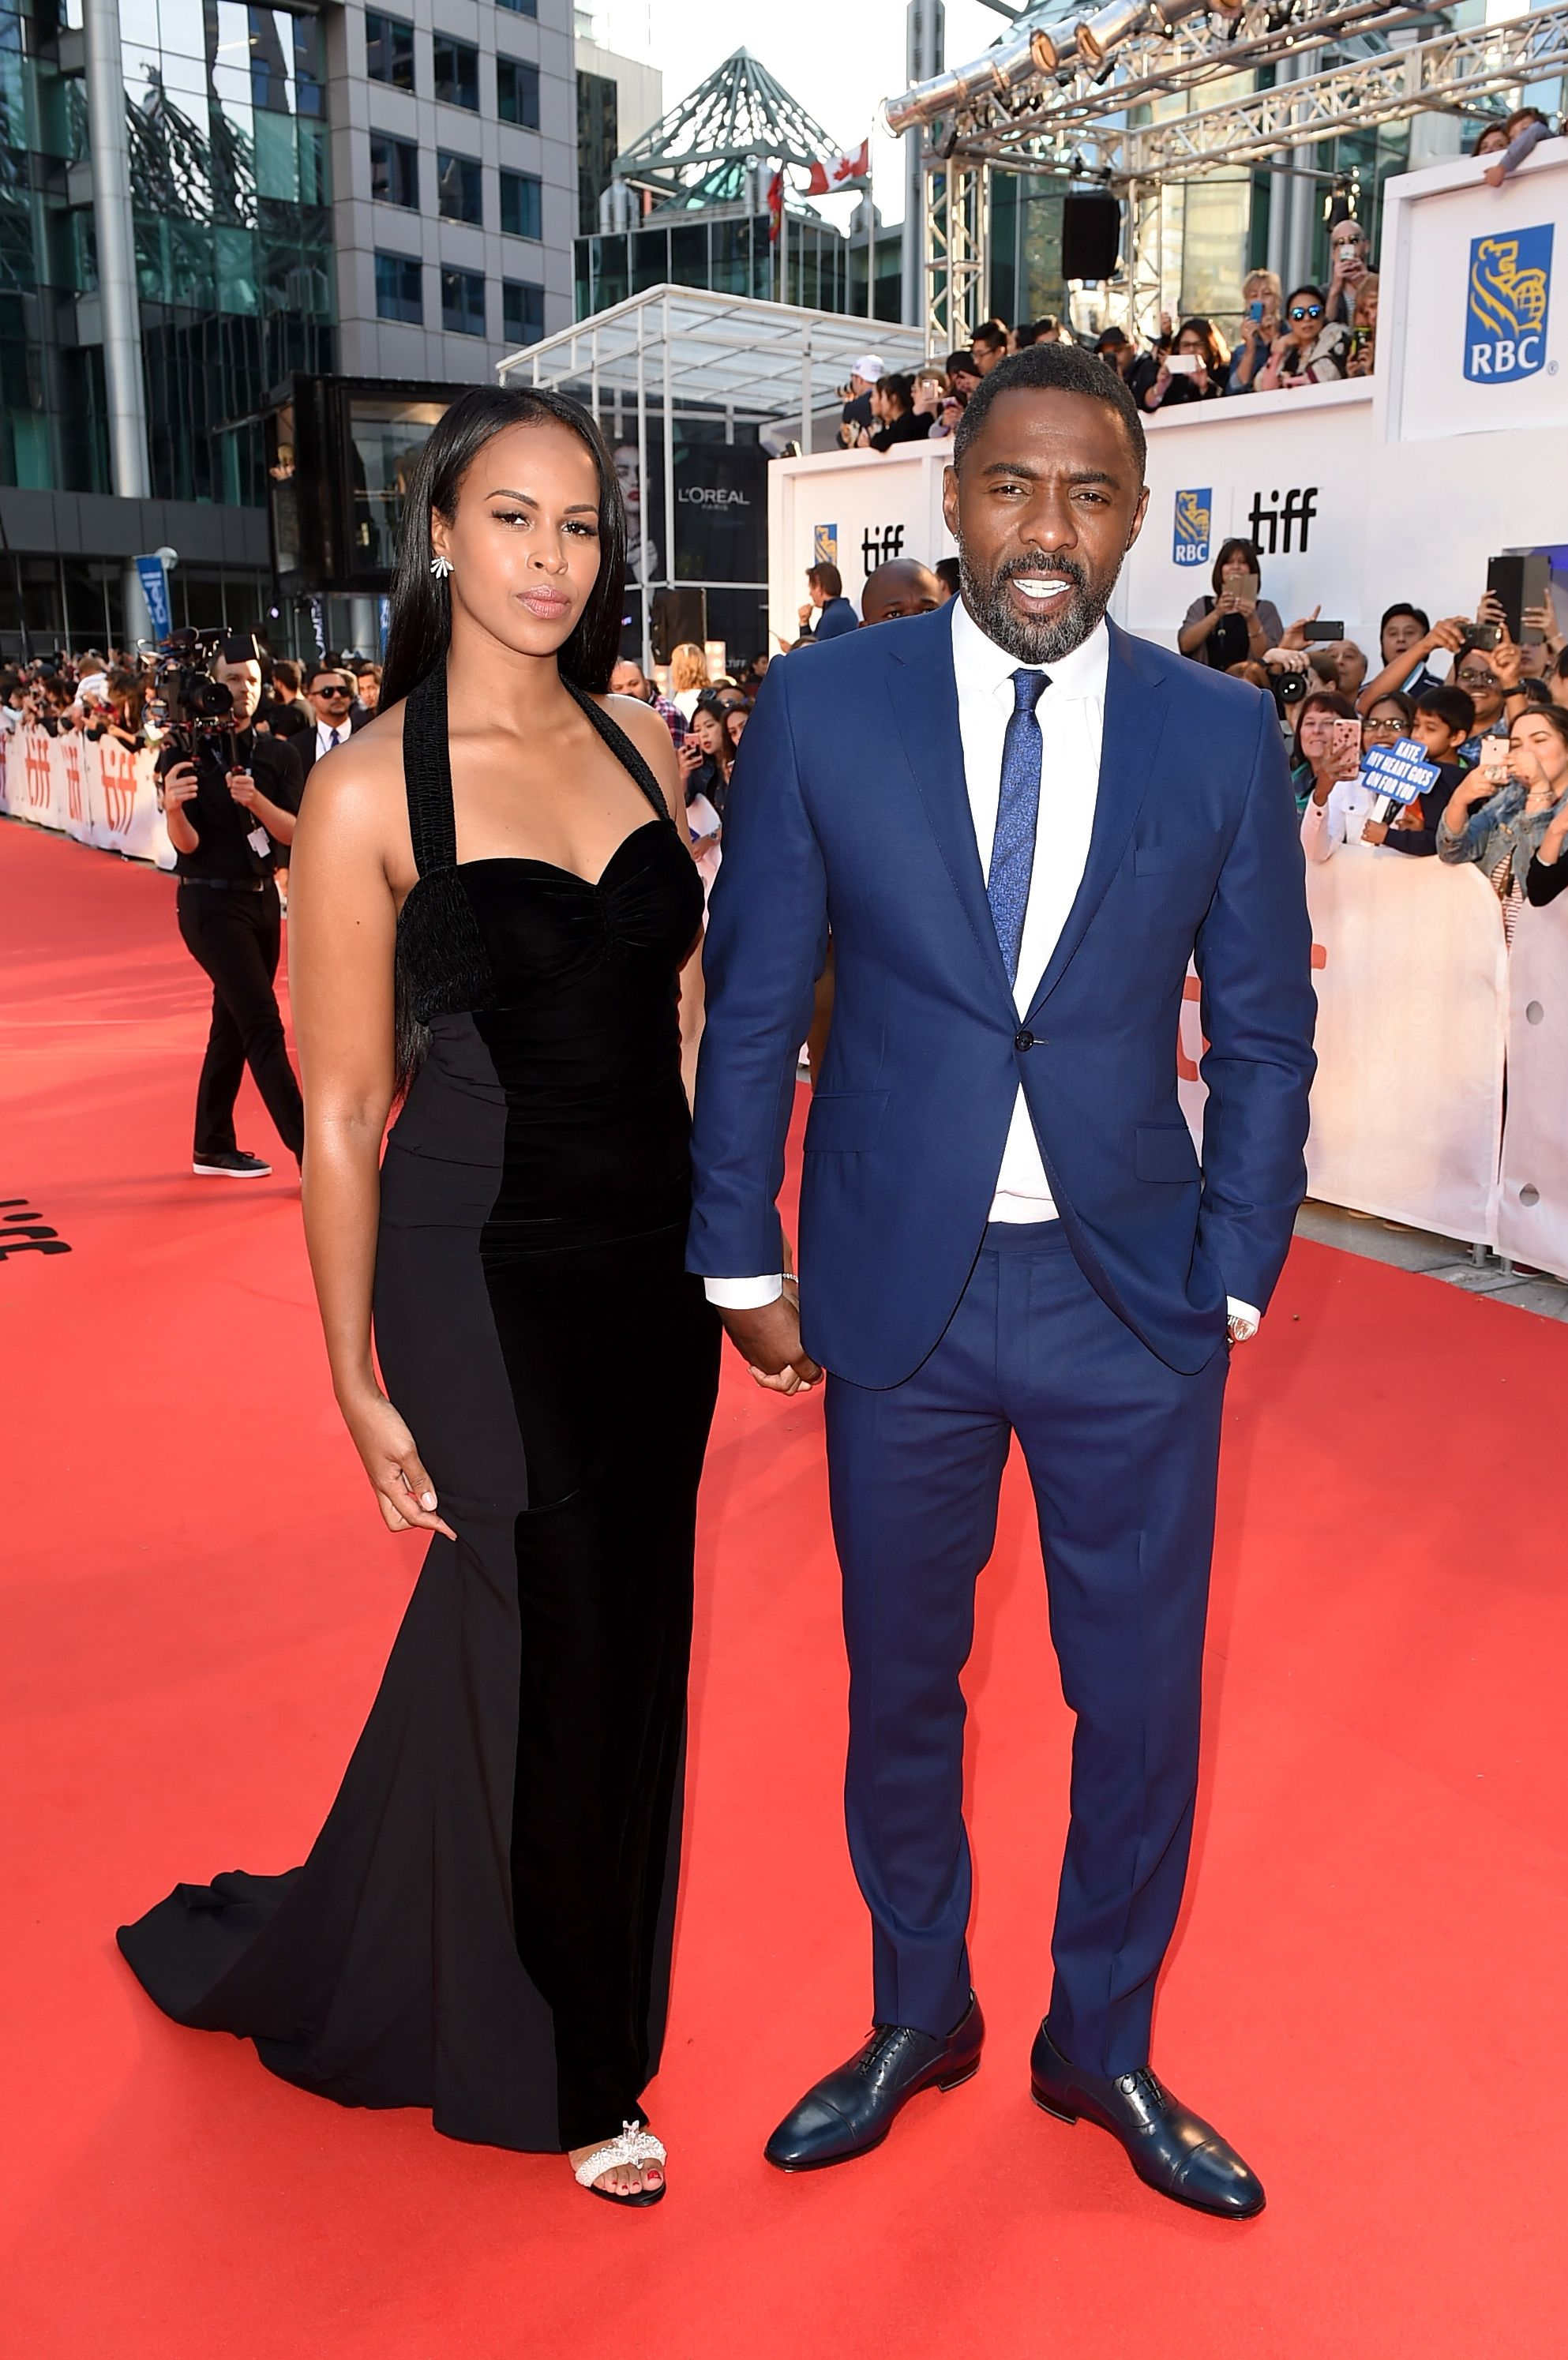 Idris Elba proposed at a screening of his new movie